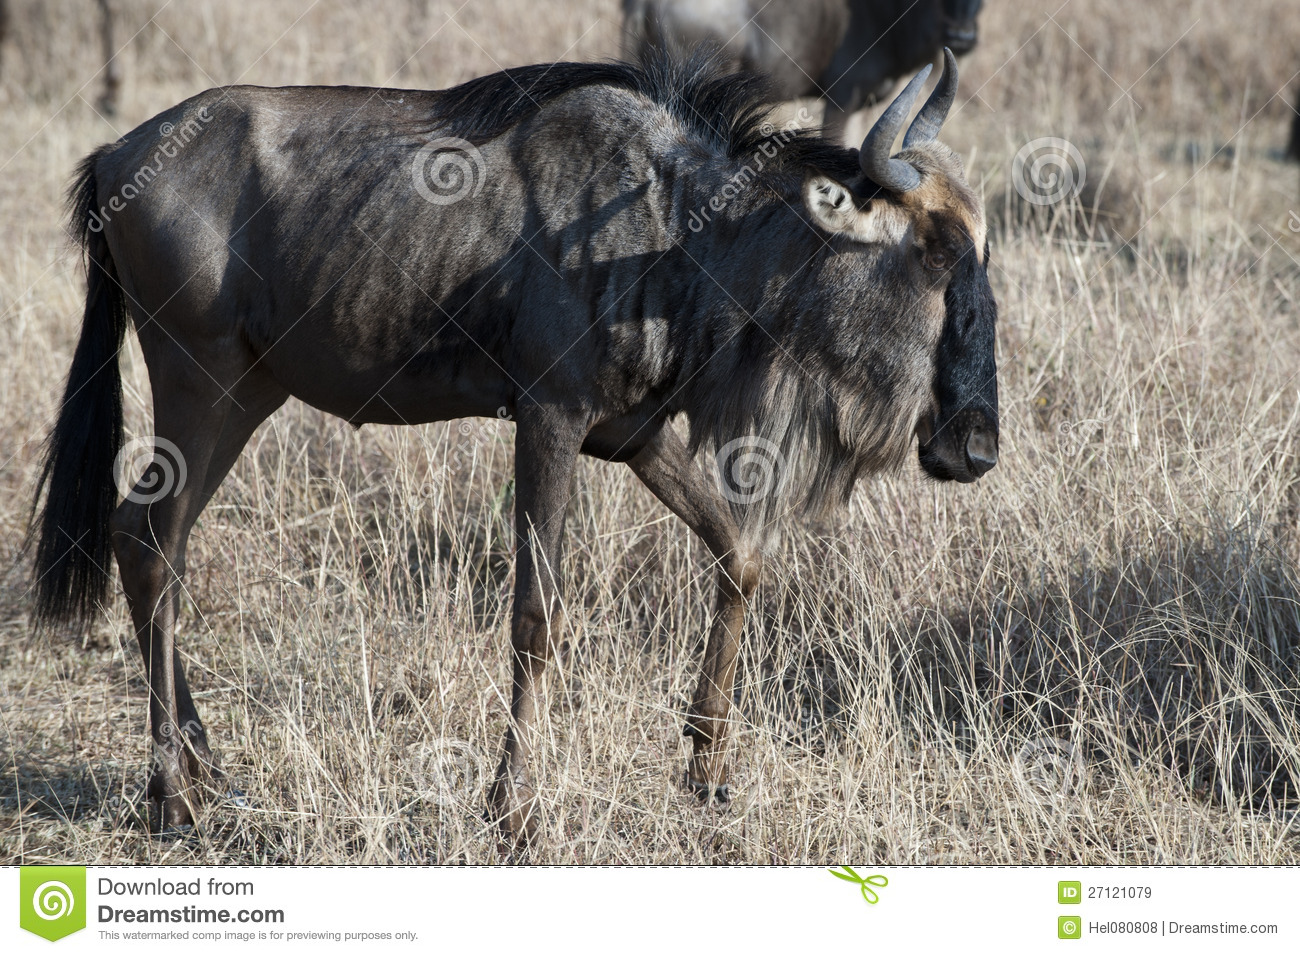 Wildebeest - gnu - no serengeti